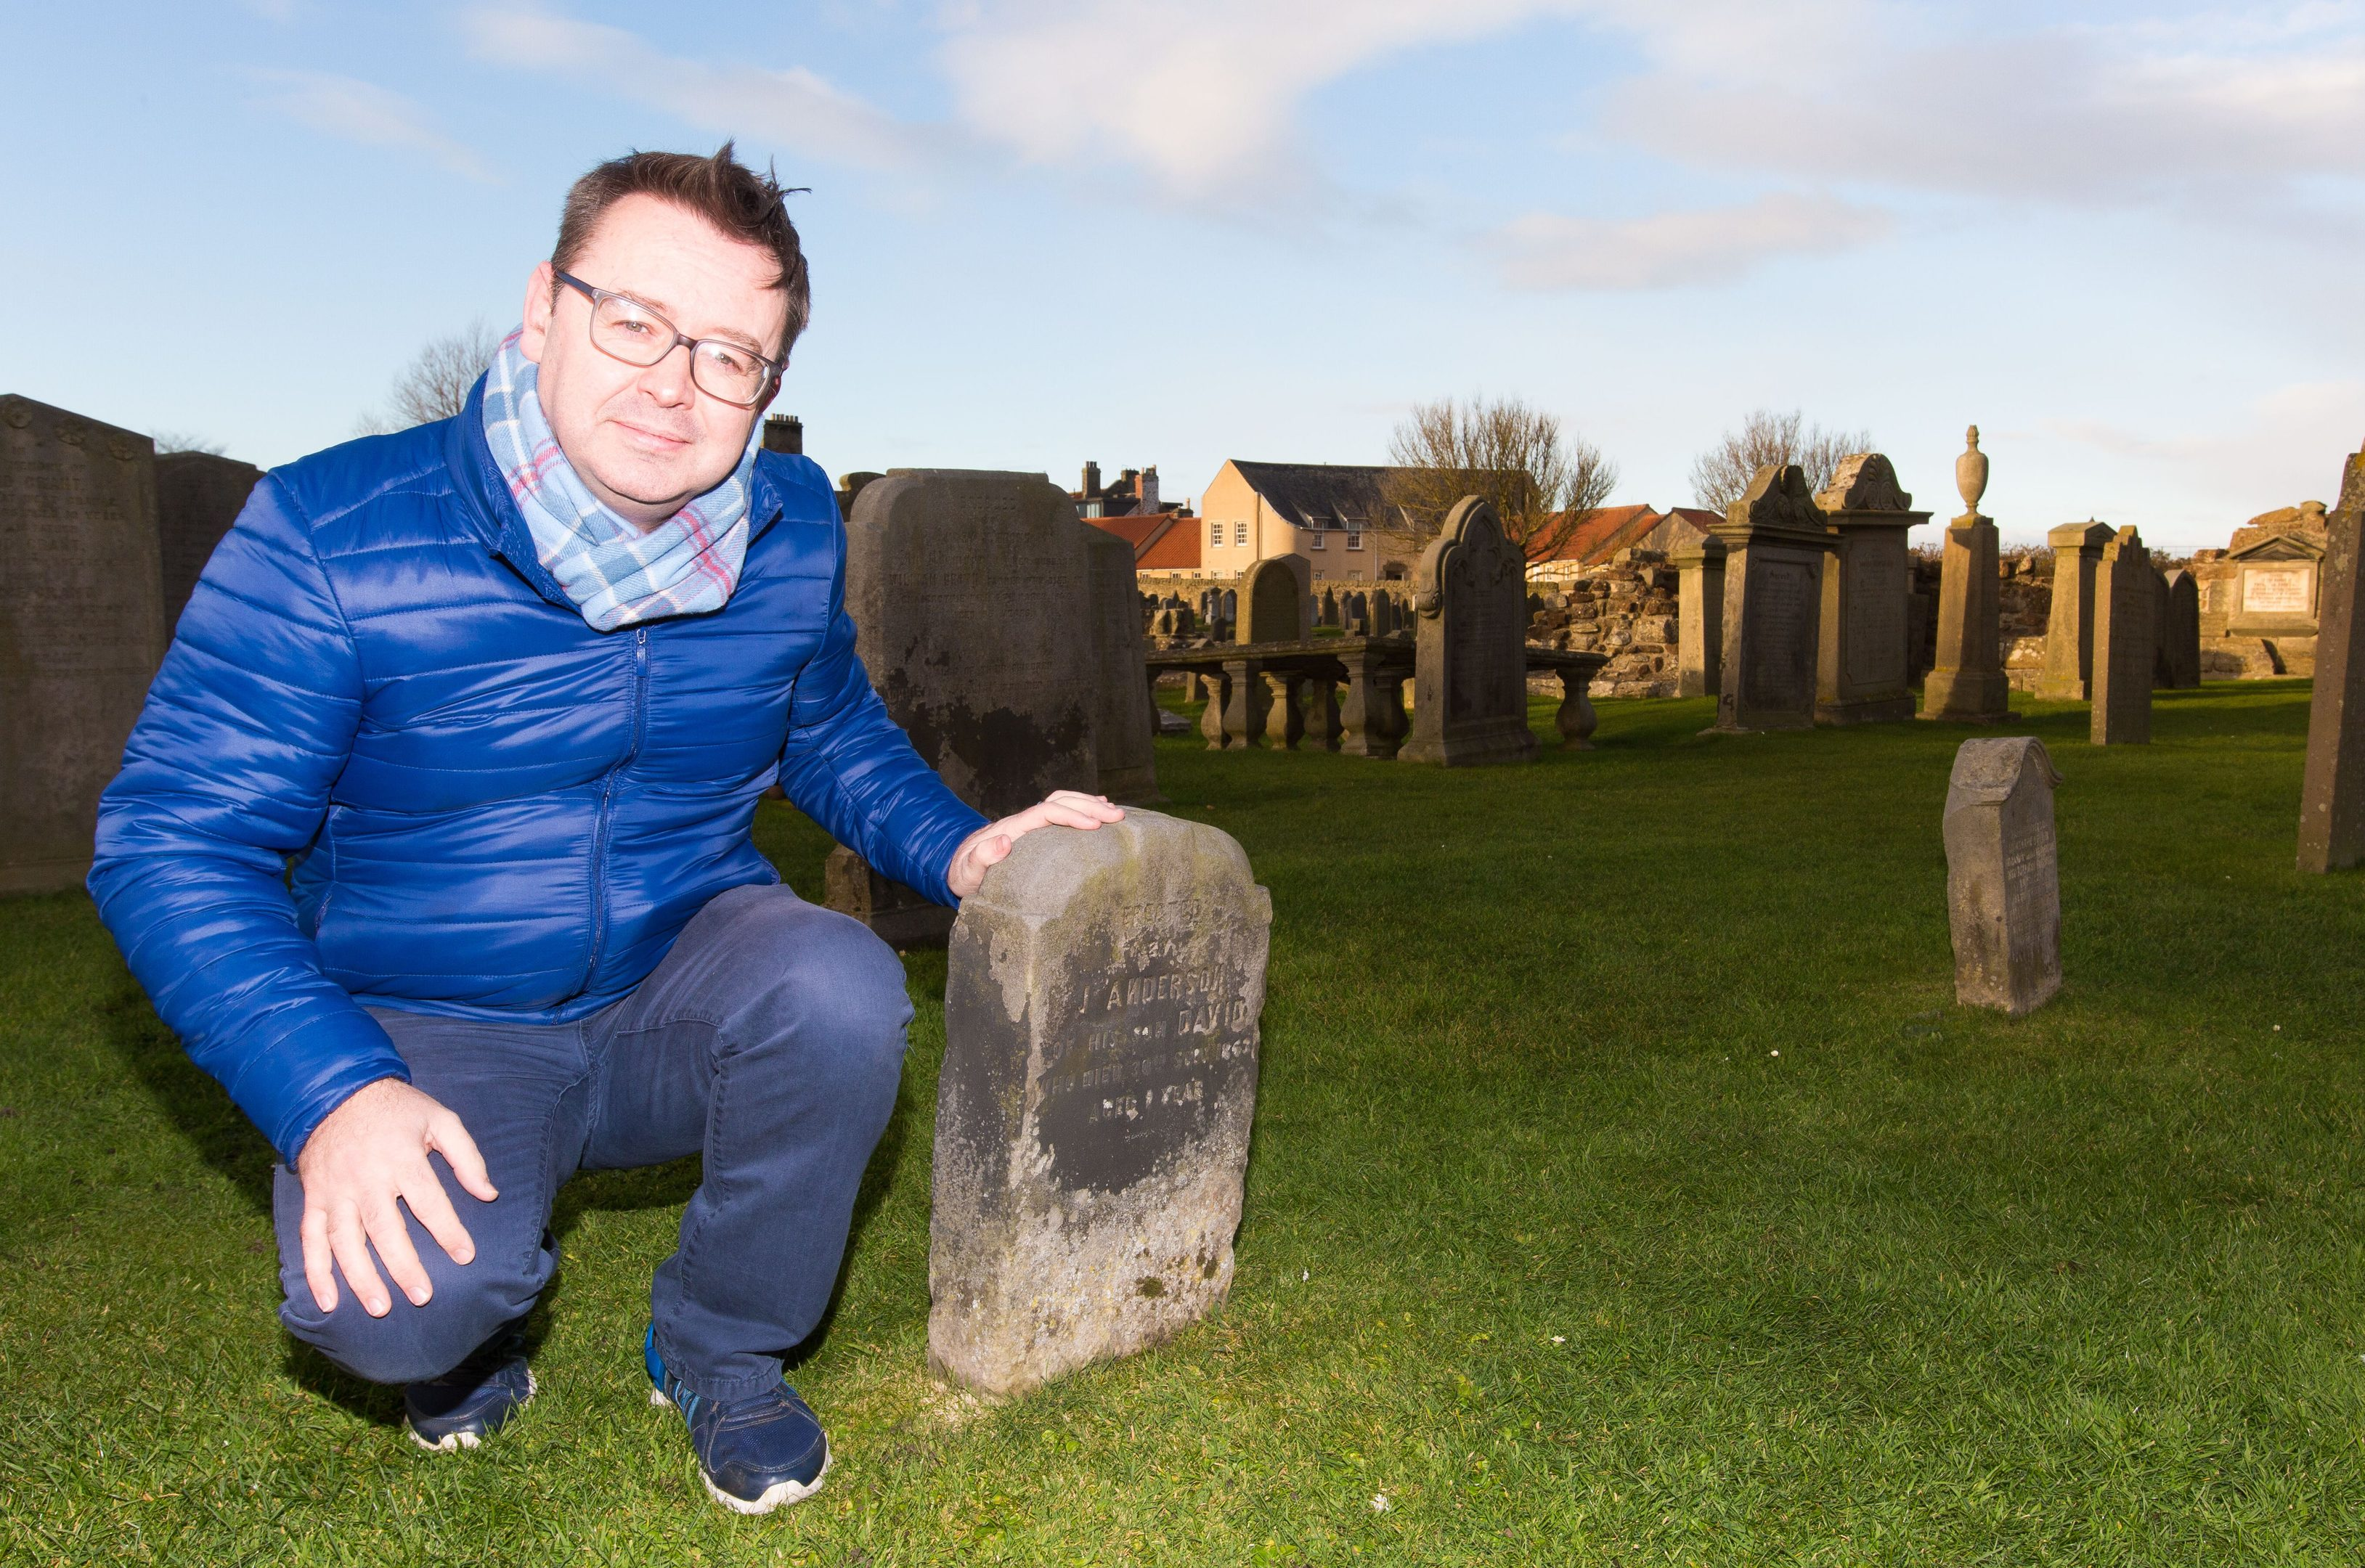 Roger McStravick with the existing gravestone erected following the death of Jamie Anderson's son.